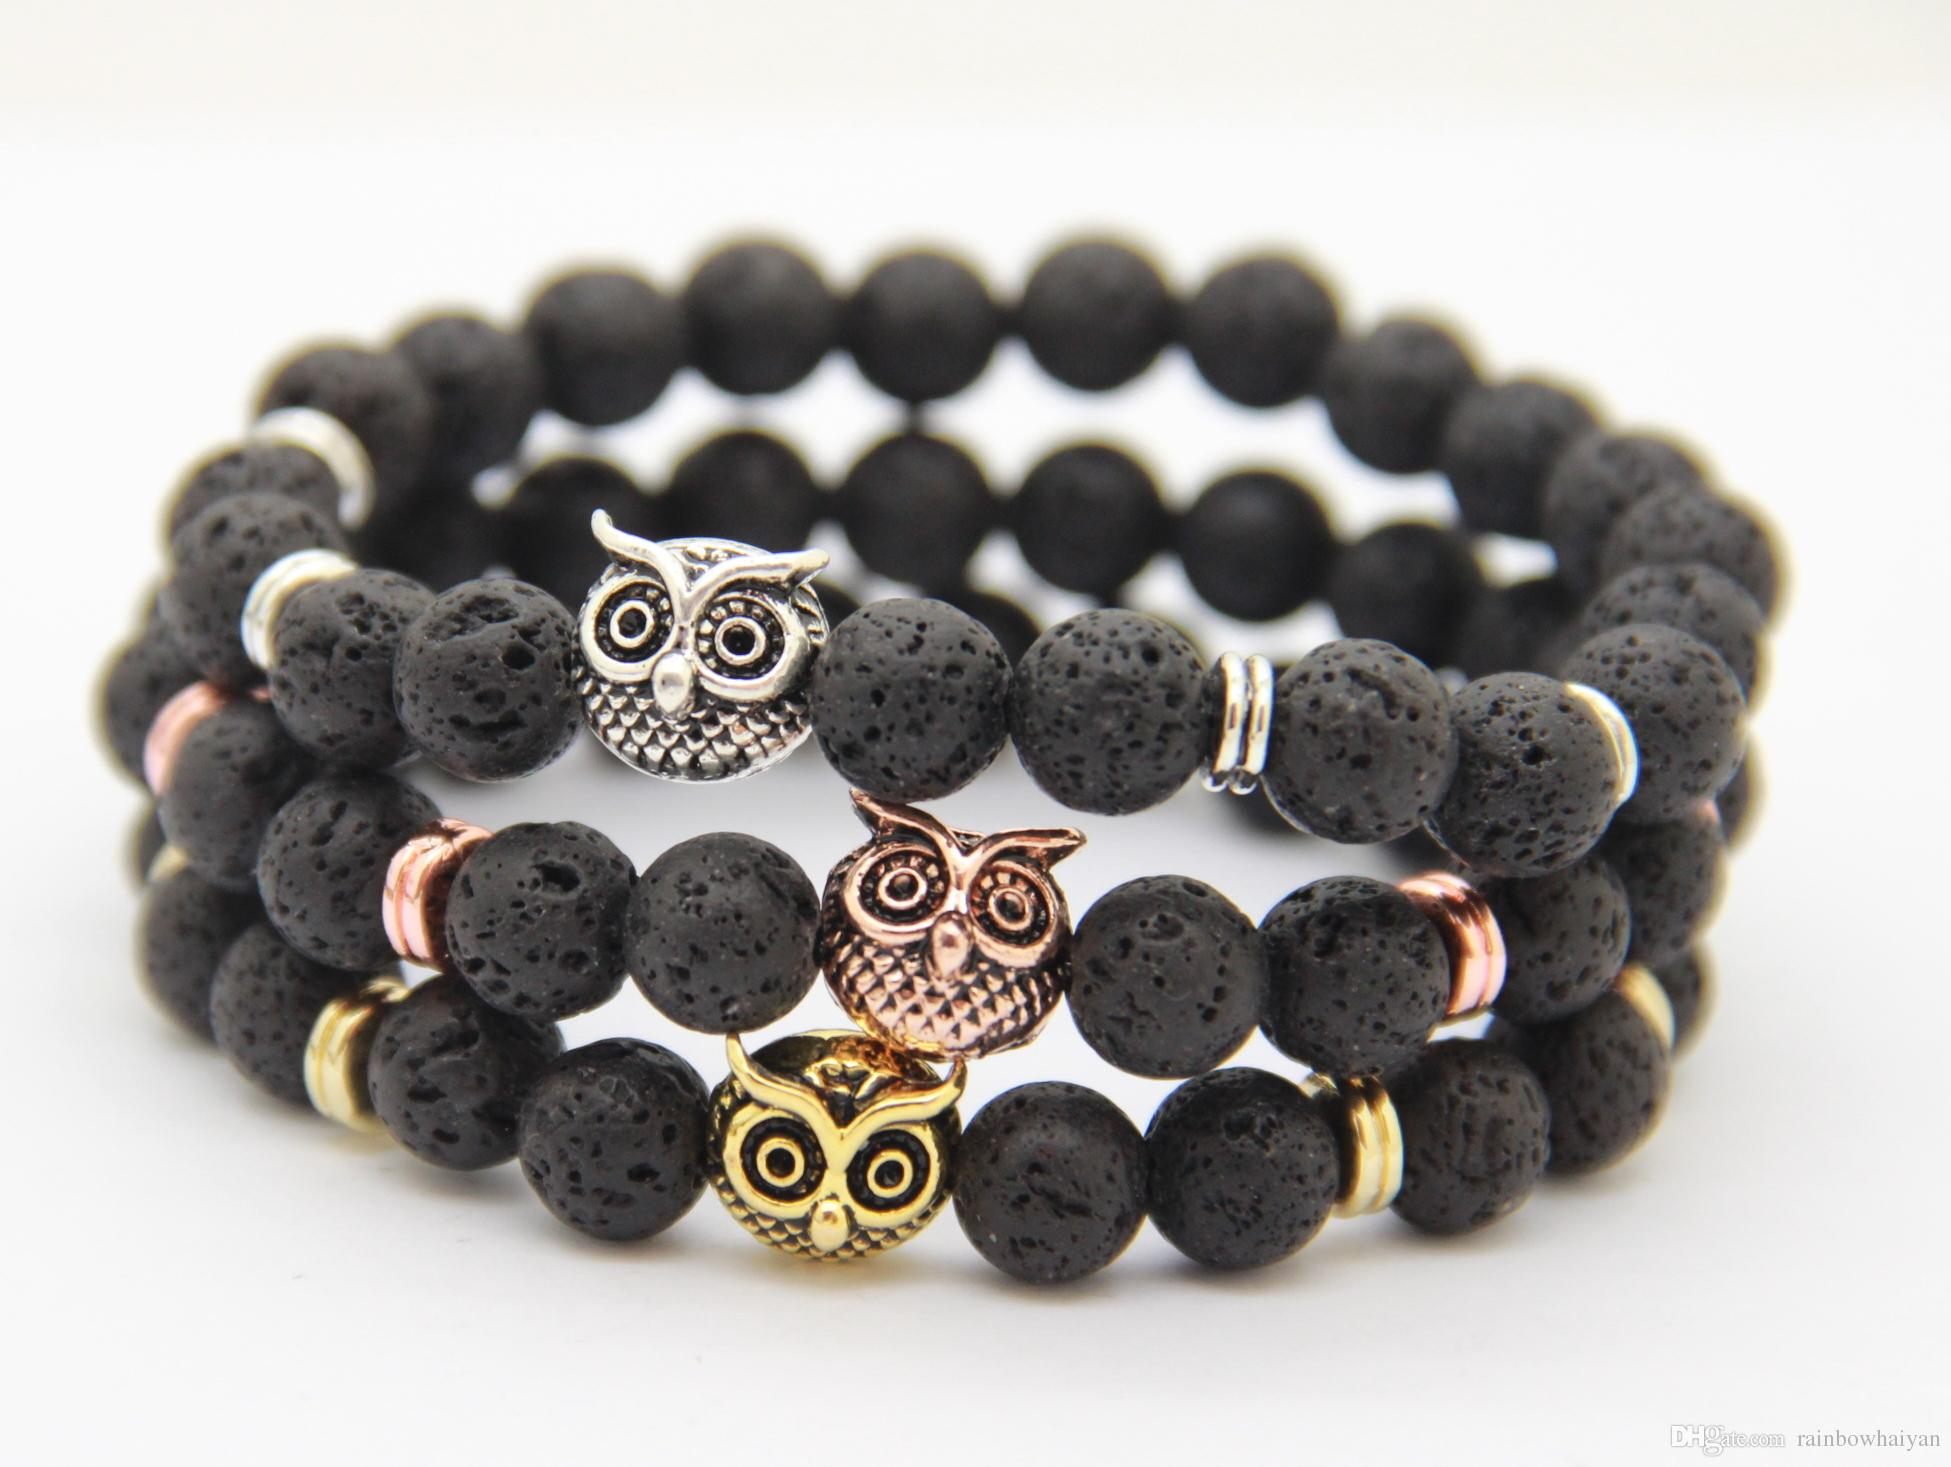 stone mens matte top com rock gemstone bracelet jewellery plaza agate head black w bracelets lava jewelry slp beads beaded amazon lion gold elastic